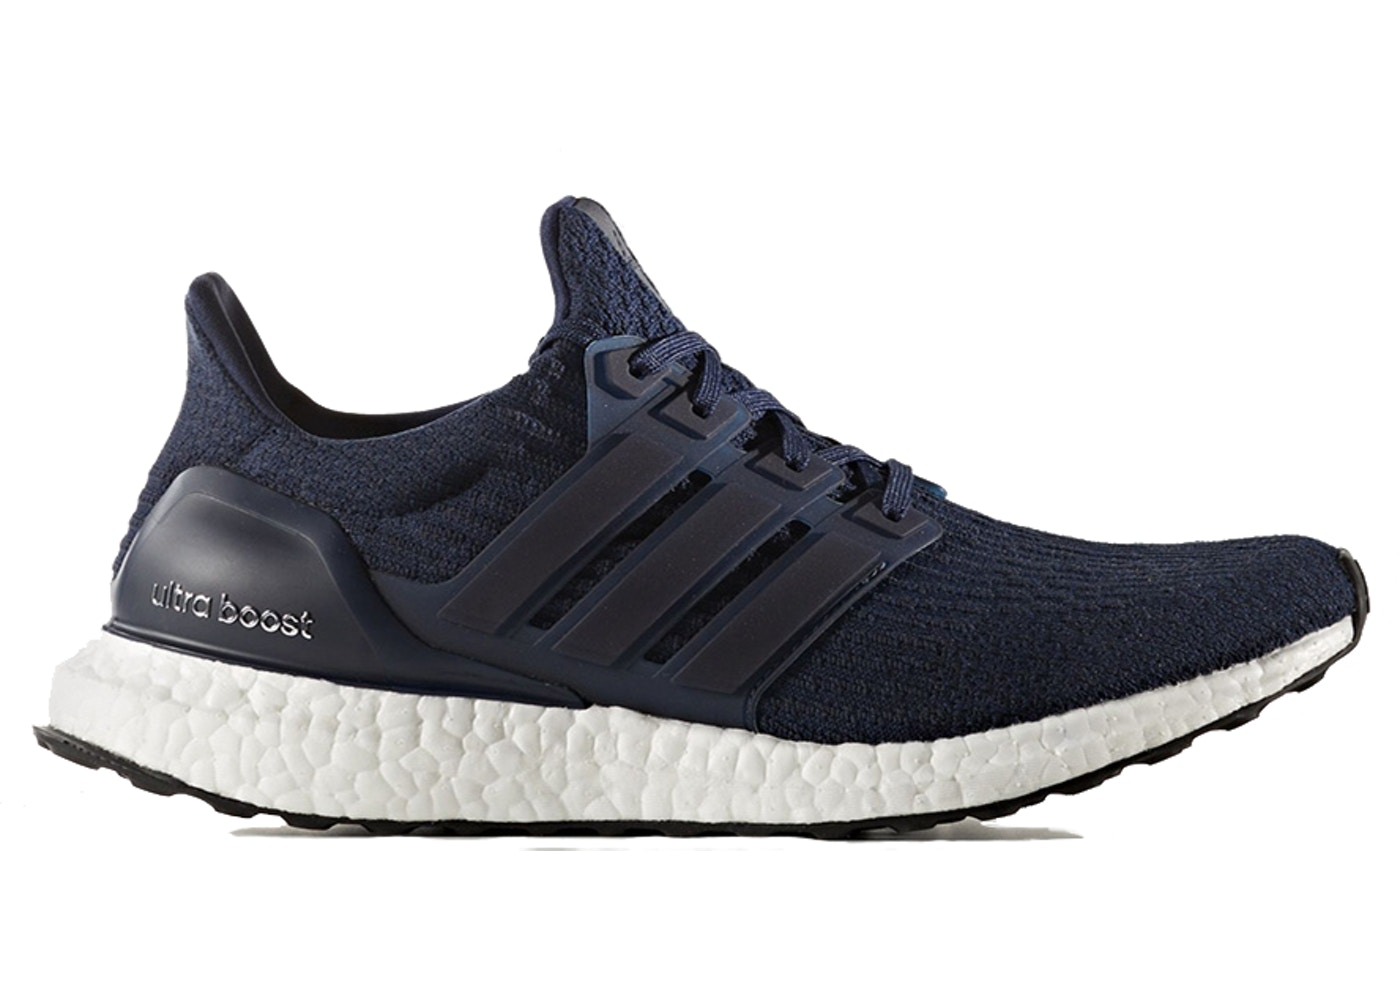 b2075d057 adidas Ultra Boost 3.0 Navy - BA8843